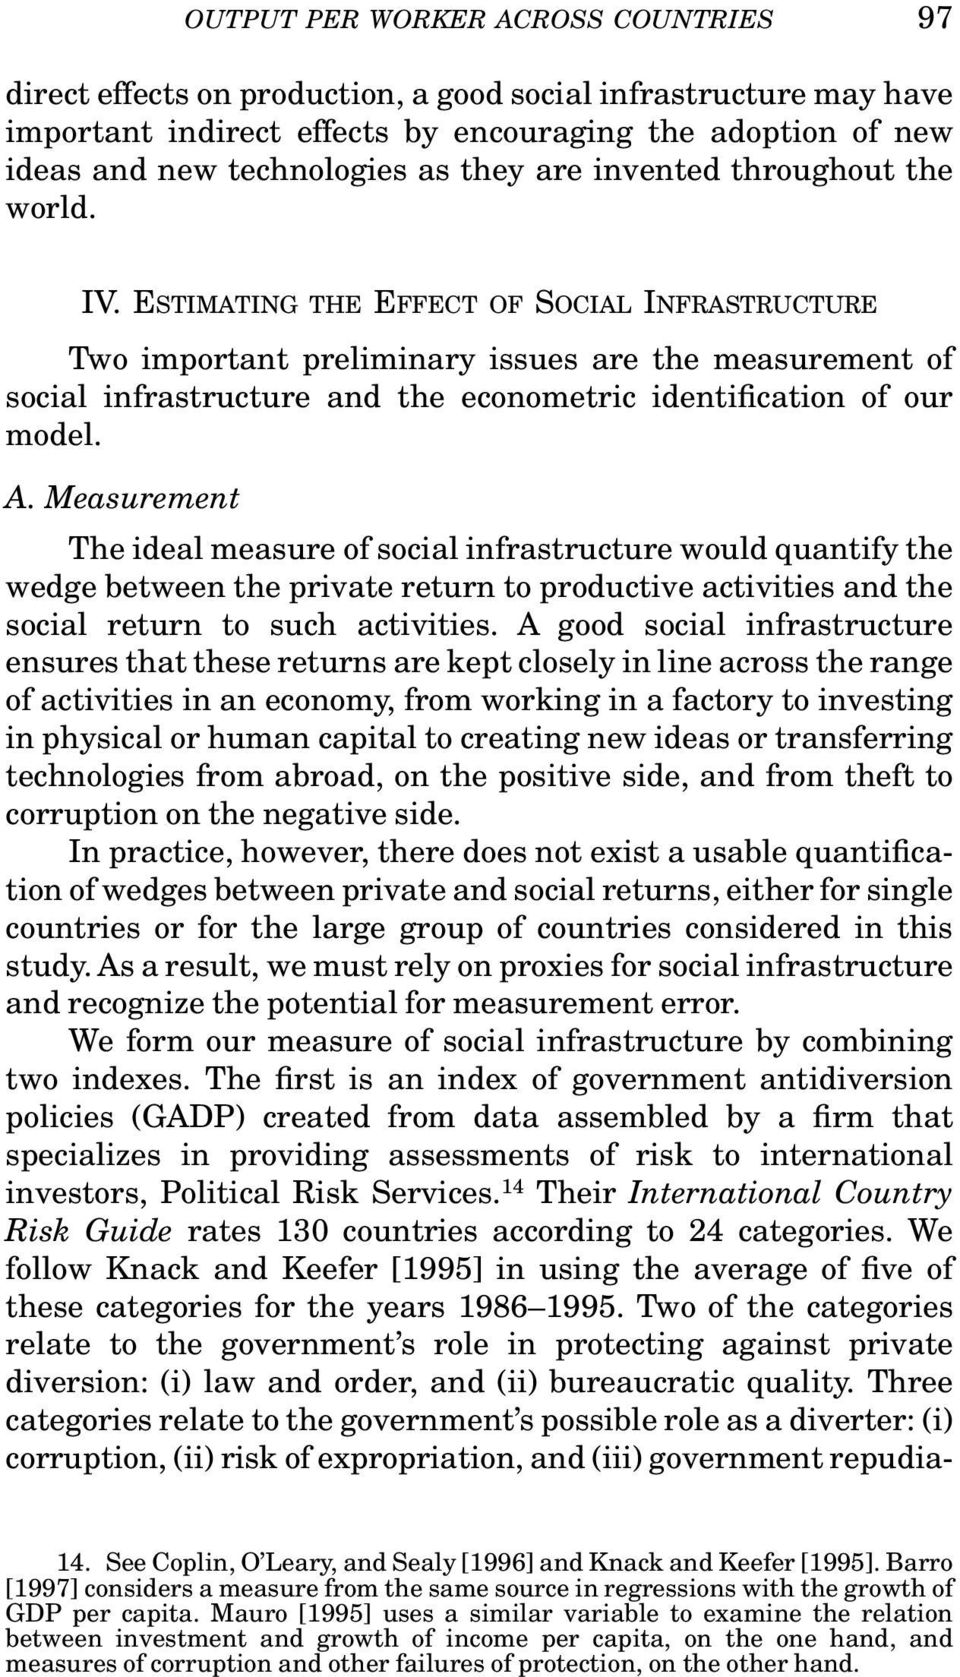 ESTIMATING THE EFFECT OF SOCIAL INFRASTRUCTURE Two important preliminary issues are the measurement of social infrastructure and the econometric identification of our model. A.